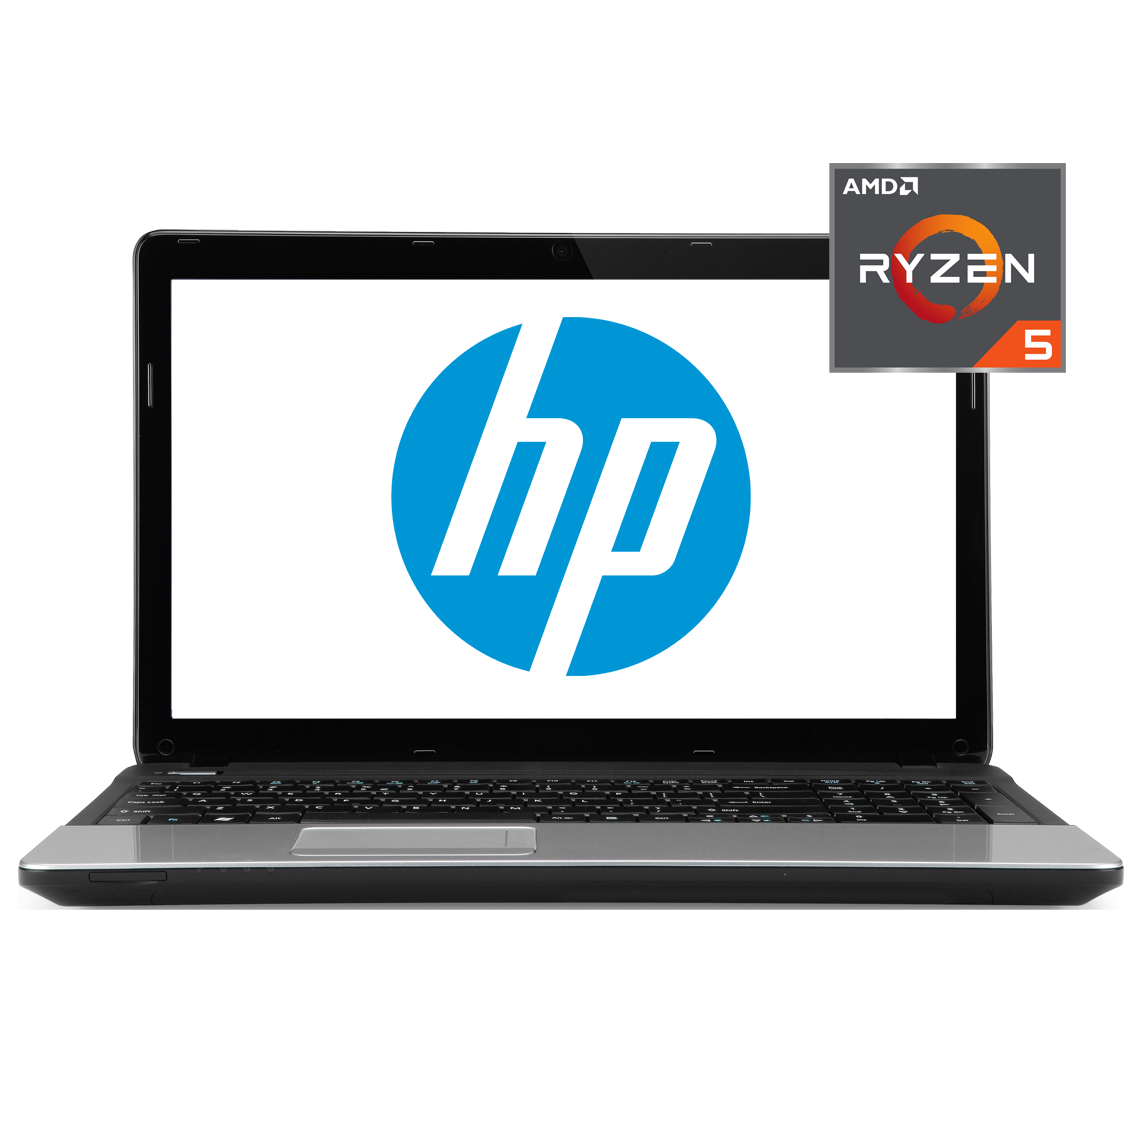 HP - 13 inch AMD Ryzen 5